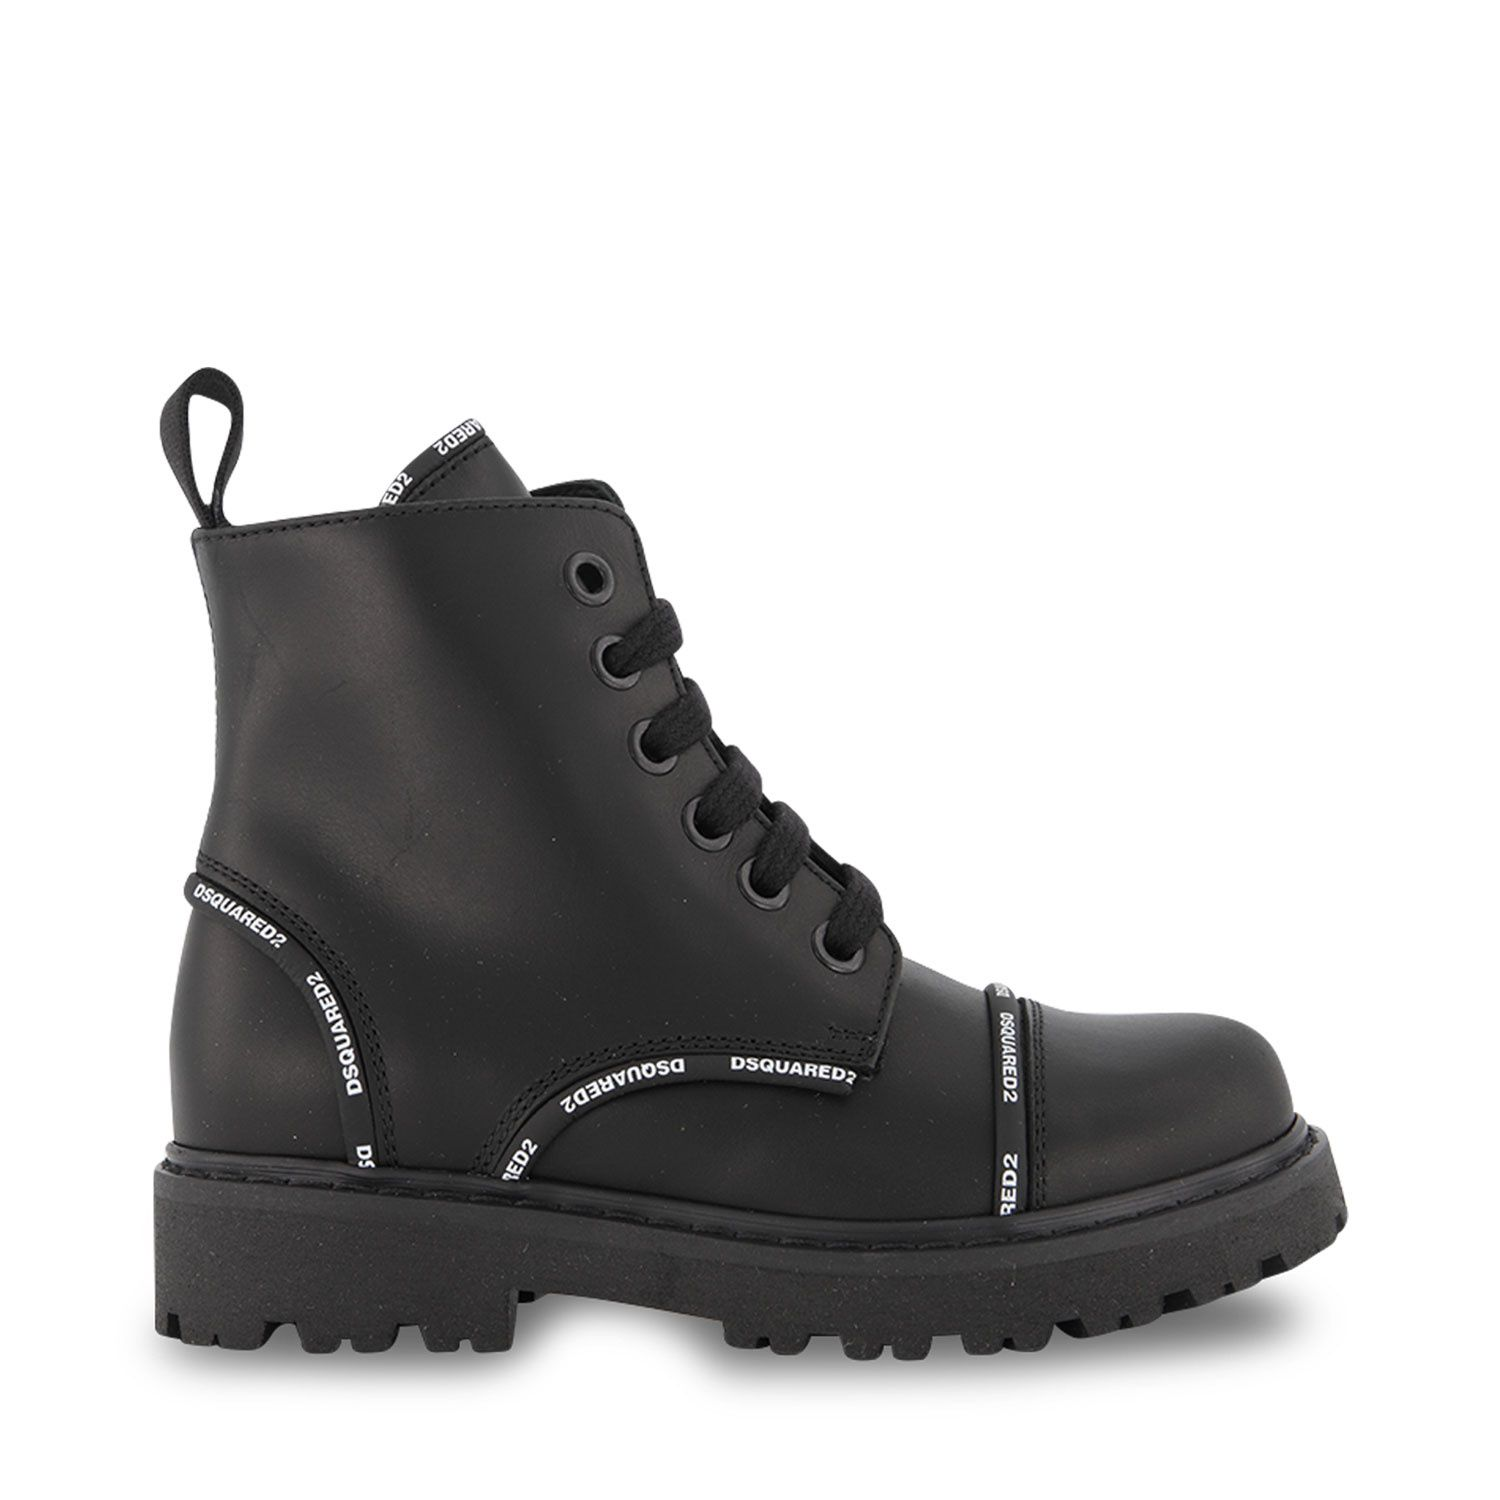 Picture of Dsquared2 68587 kids boots black